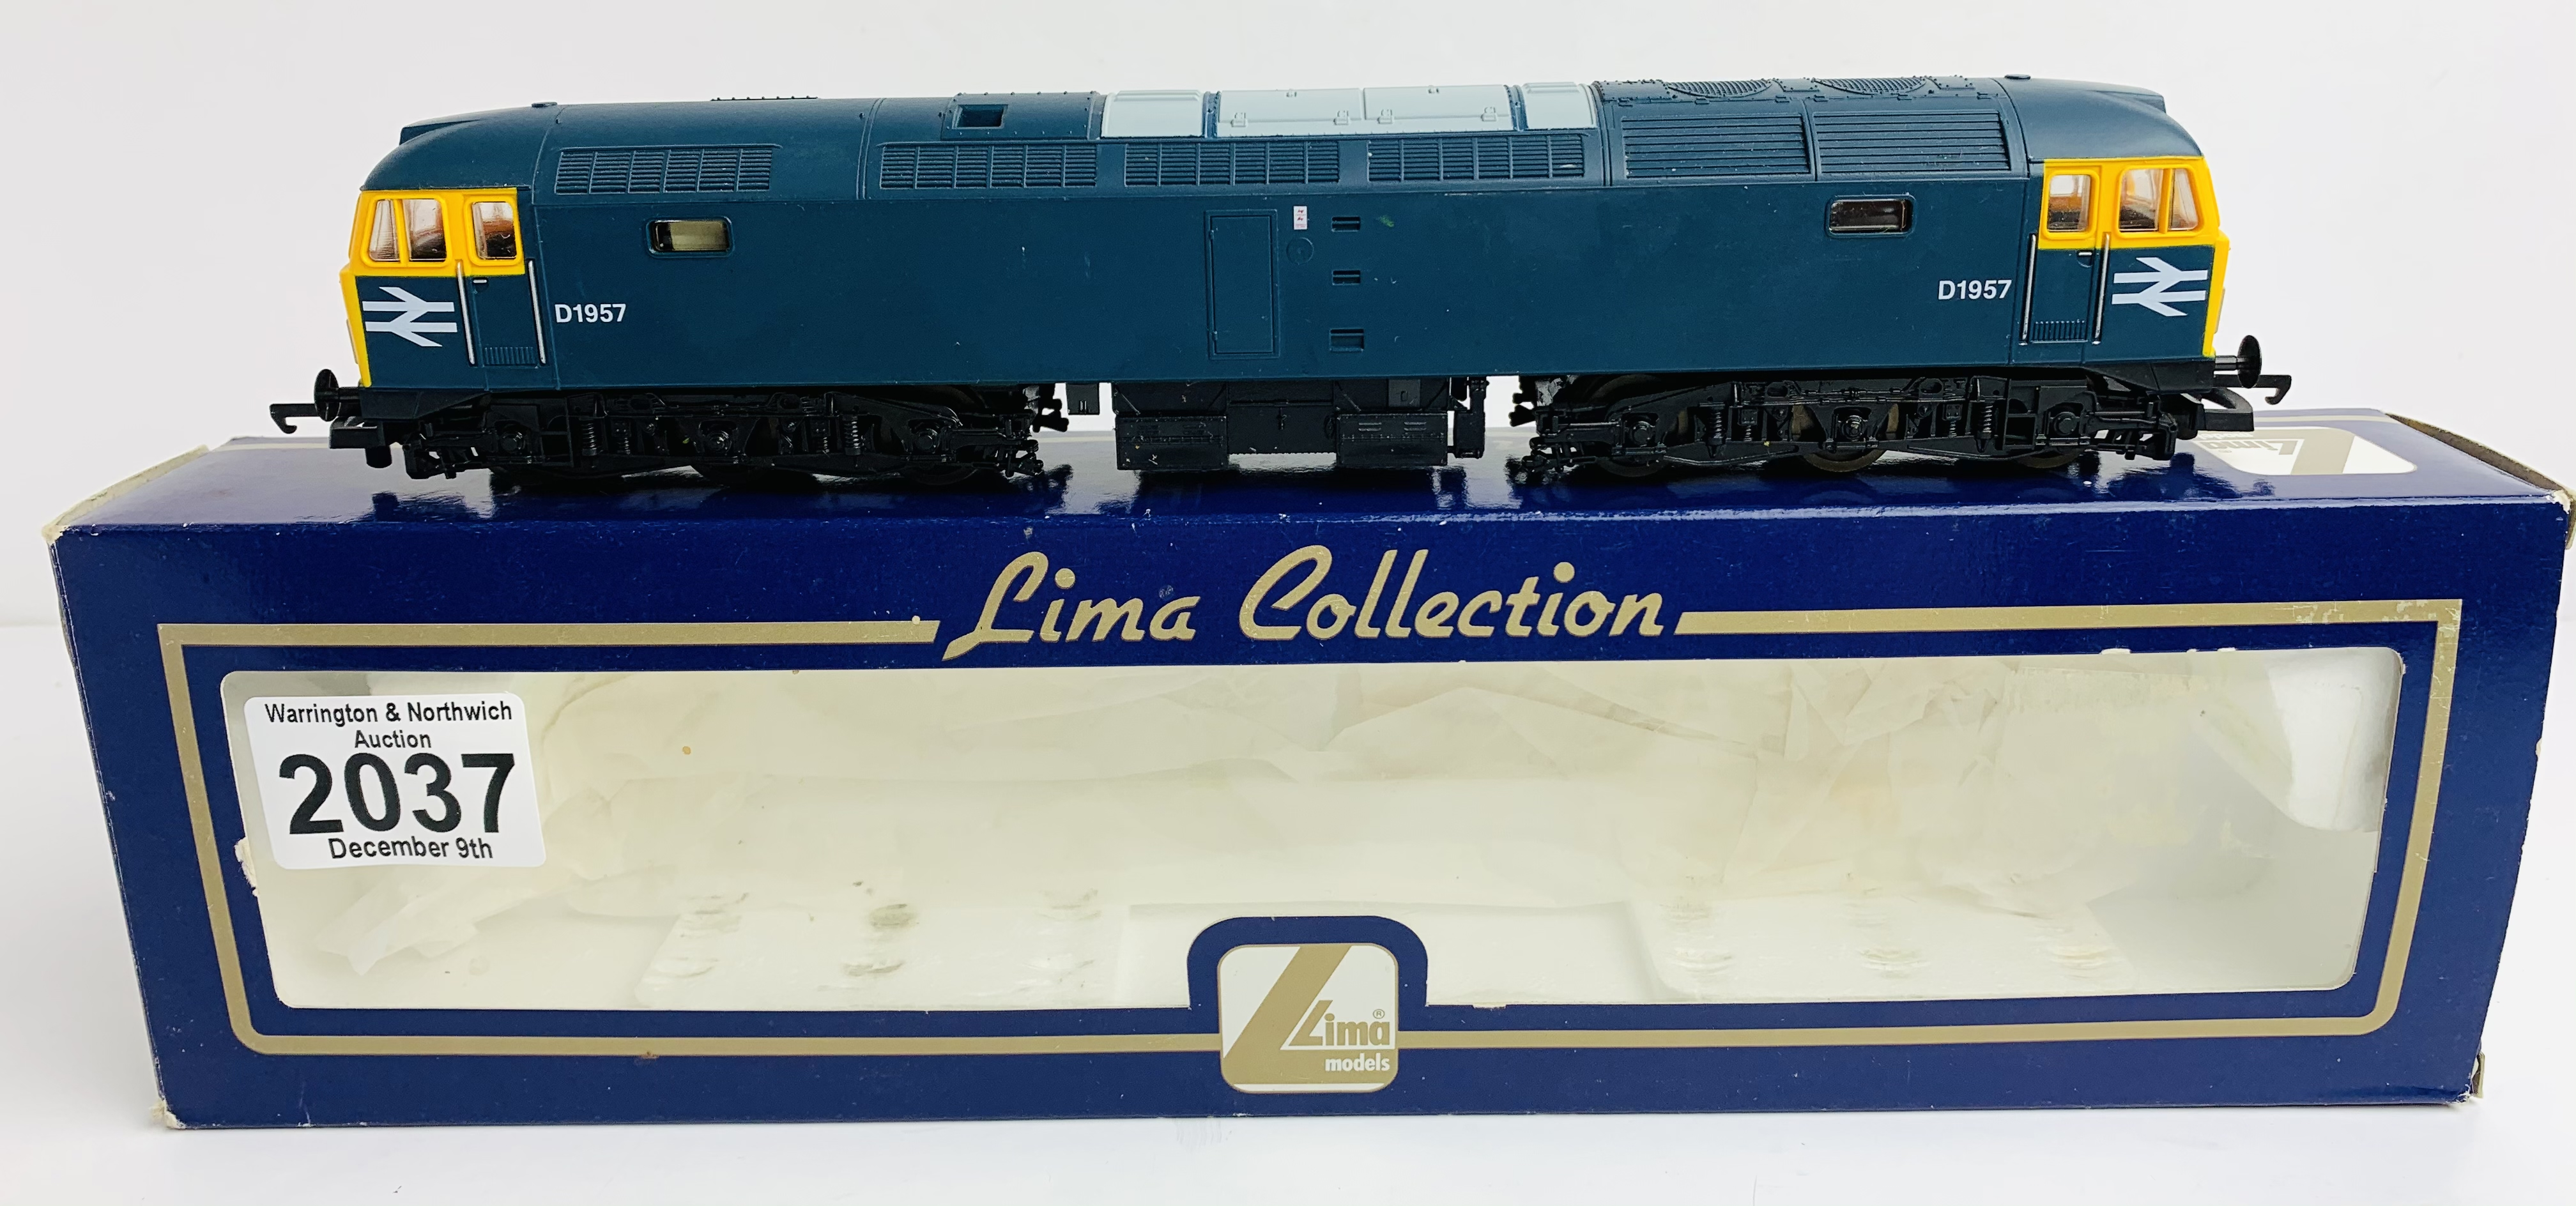 Lima L205192 Class 47 BR Blue D1957 - Boxed P&P Group 1 (£14+VAT for the first lot and £1+VAT for